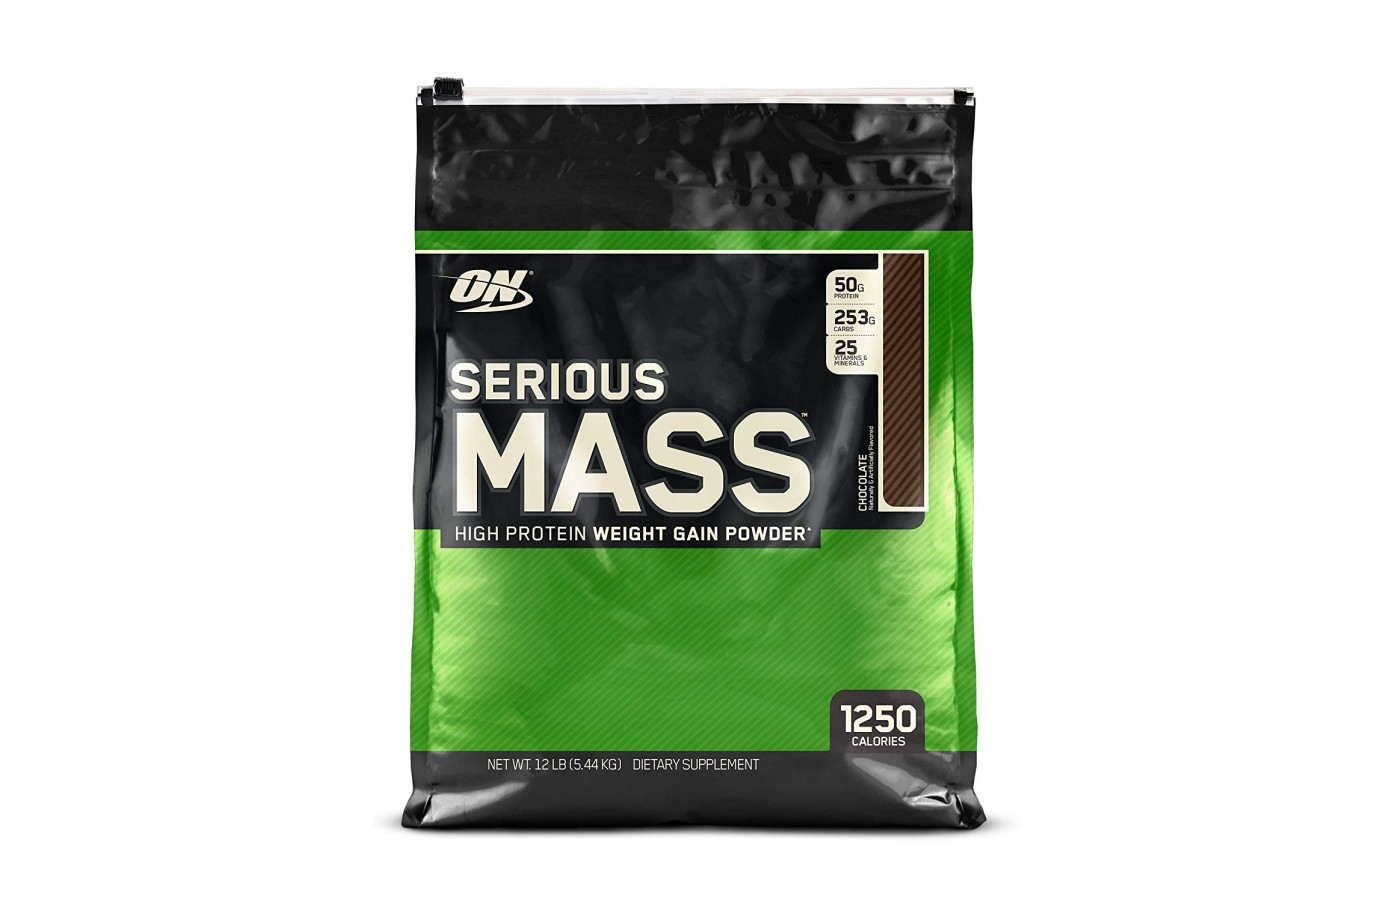 Serious Mass Packet